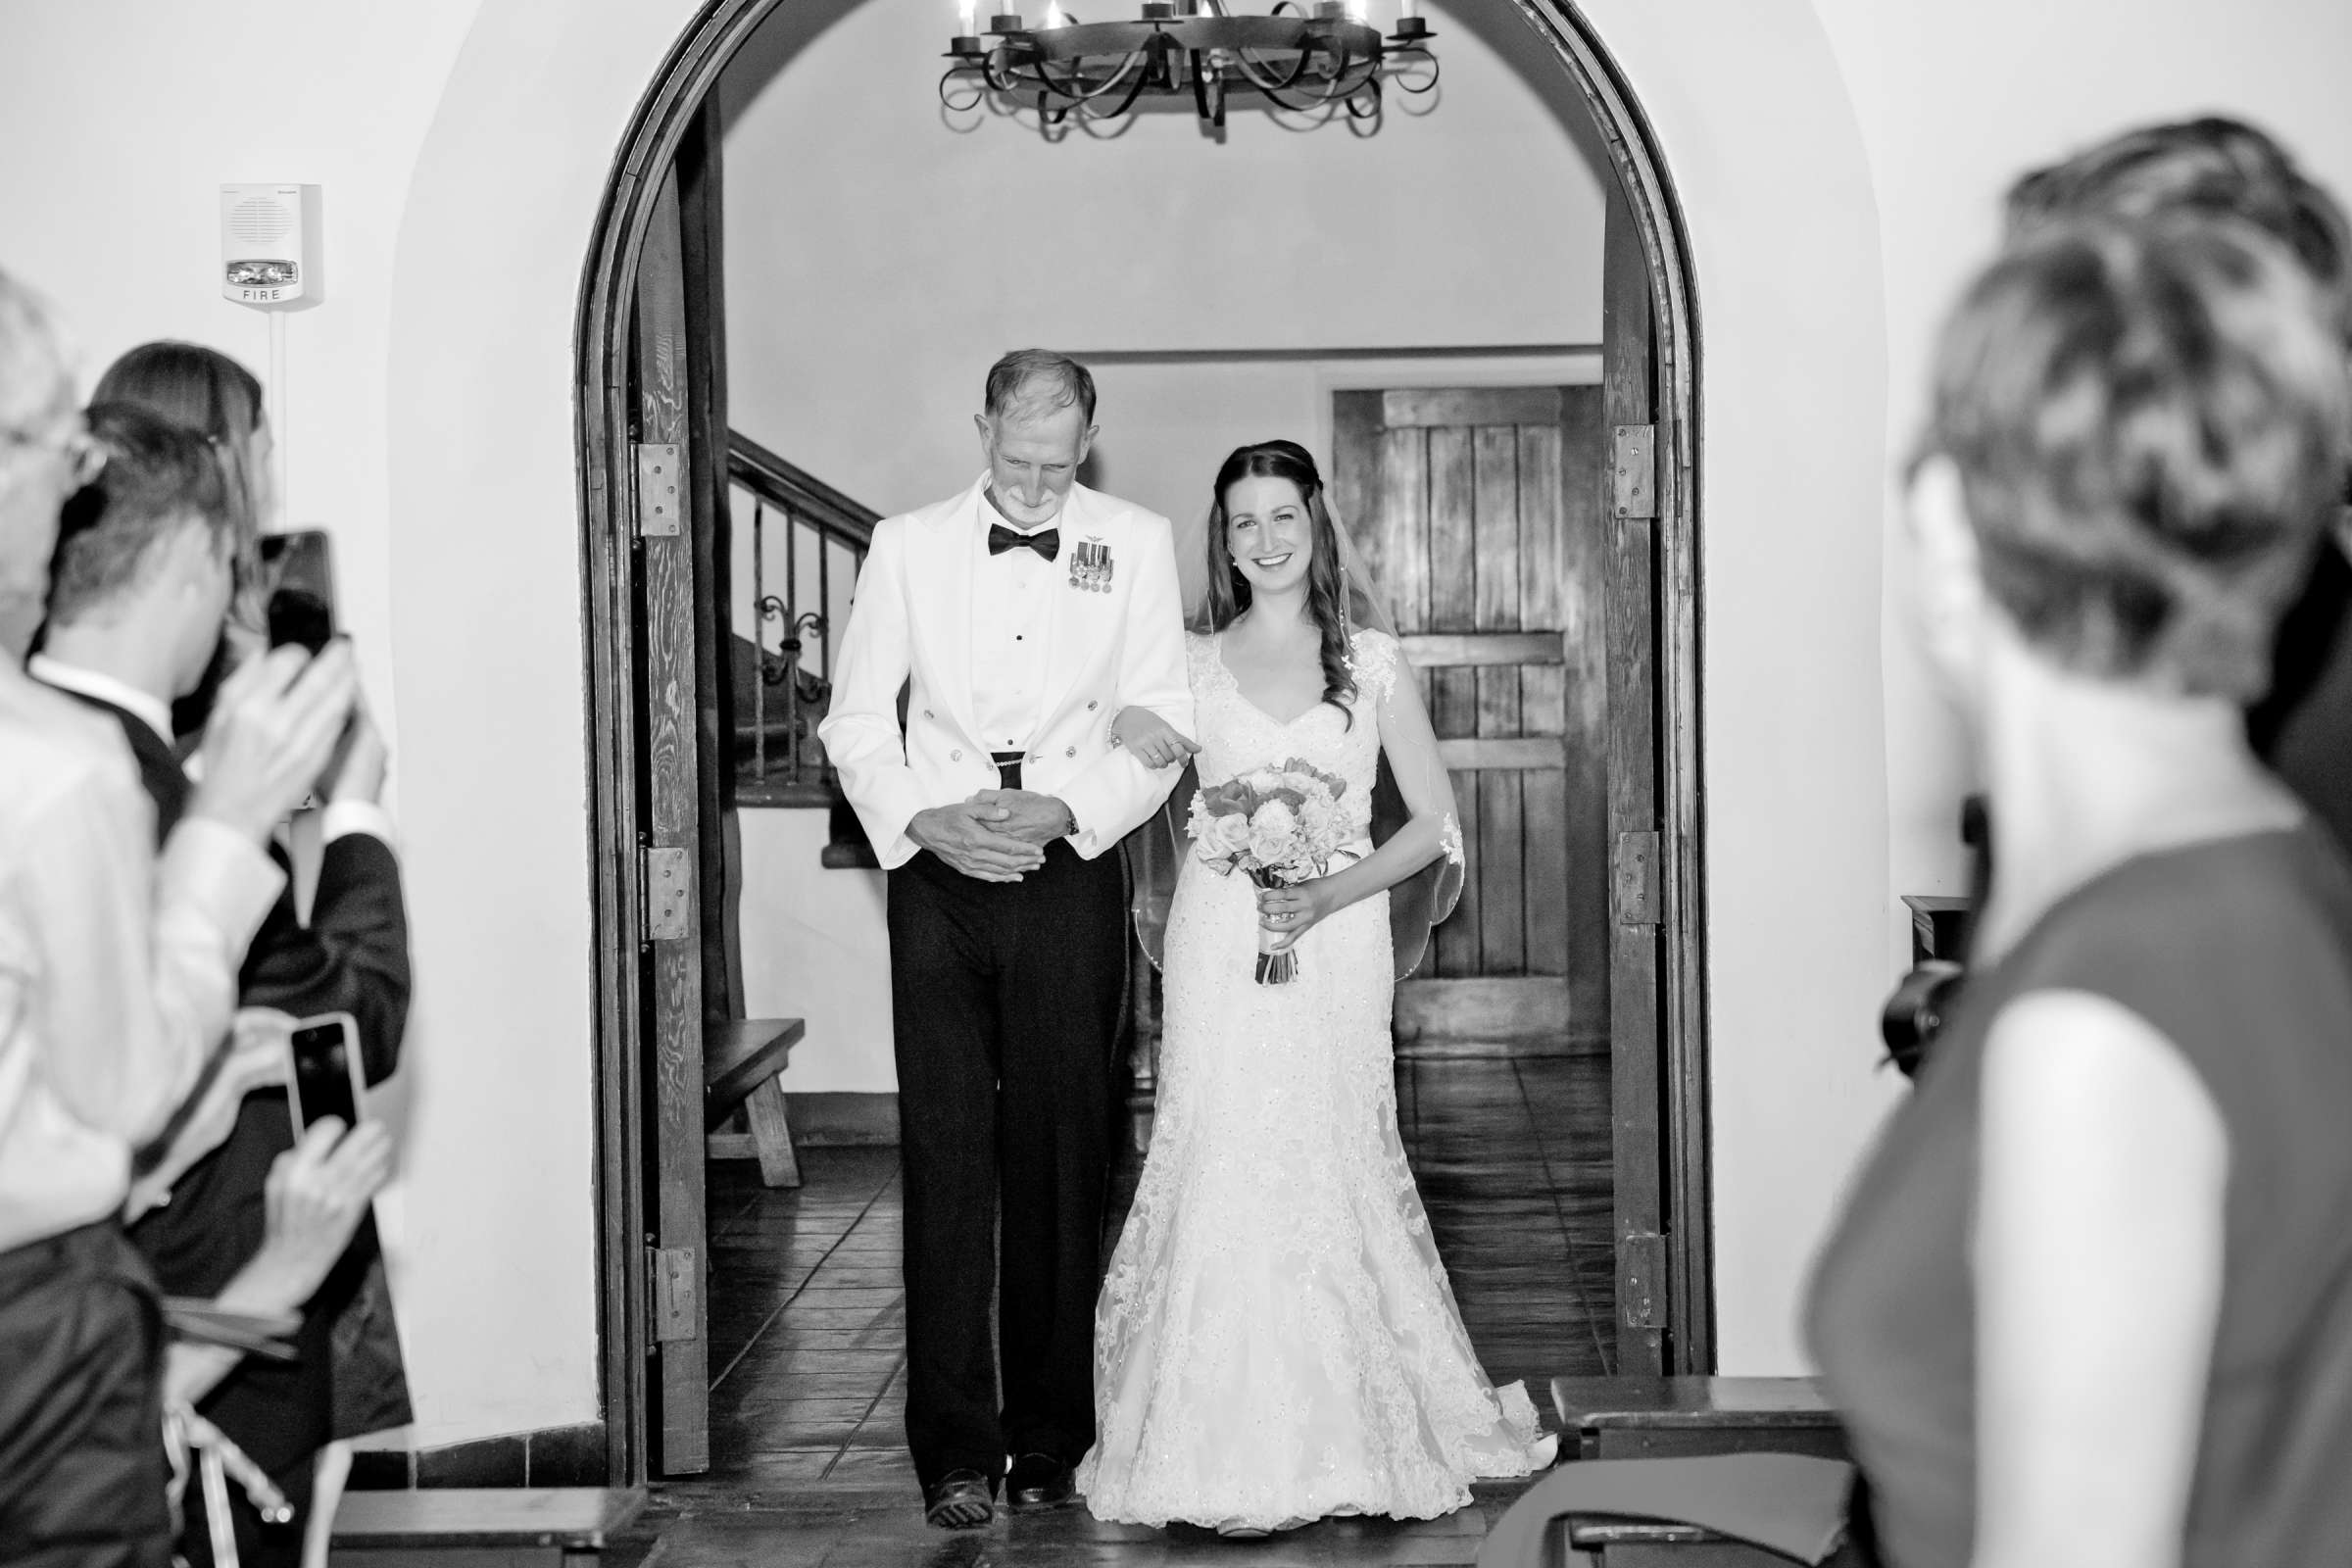 The Prado Wedding coordinated by First Comes Love Weddings & Events, Erin and Peter Wedding Photo #30 by True Photography